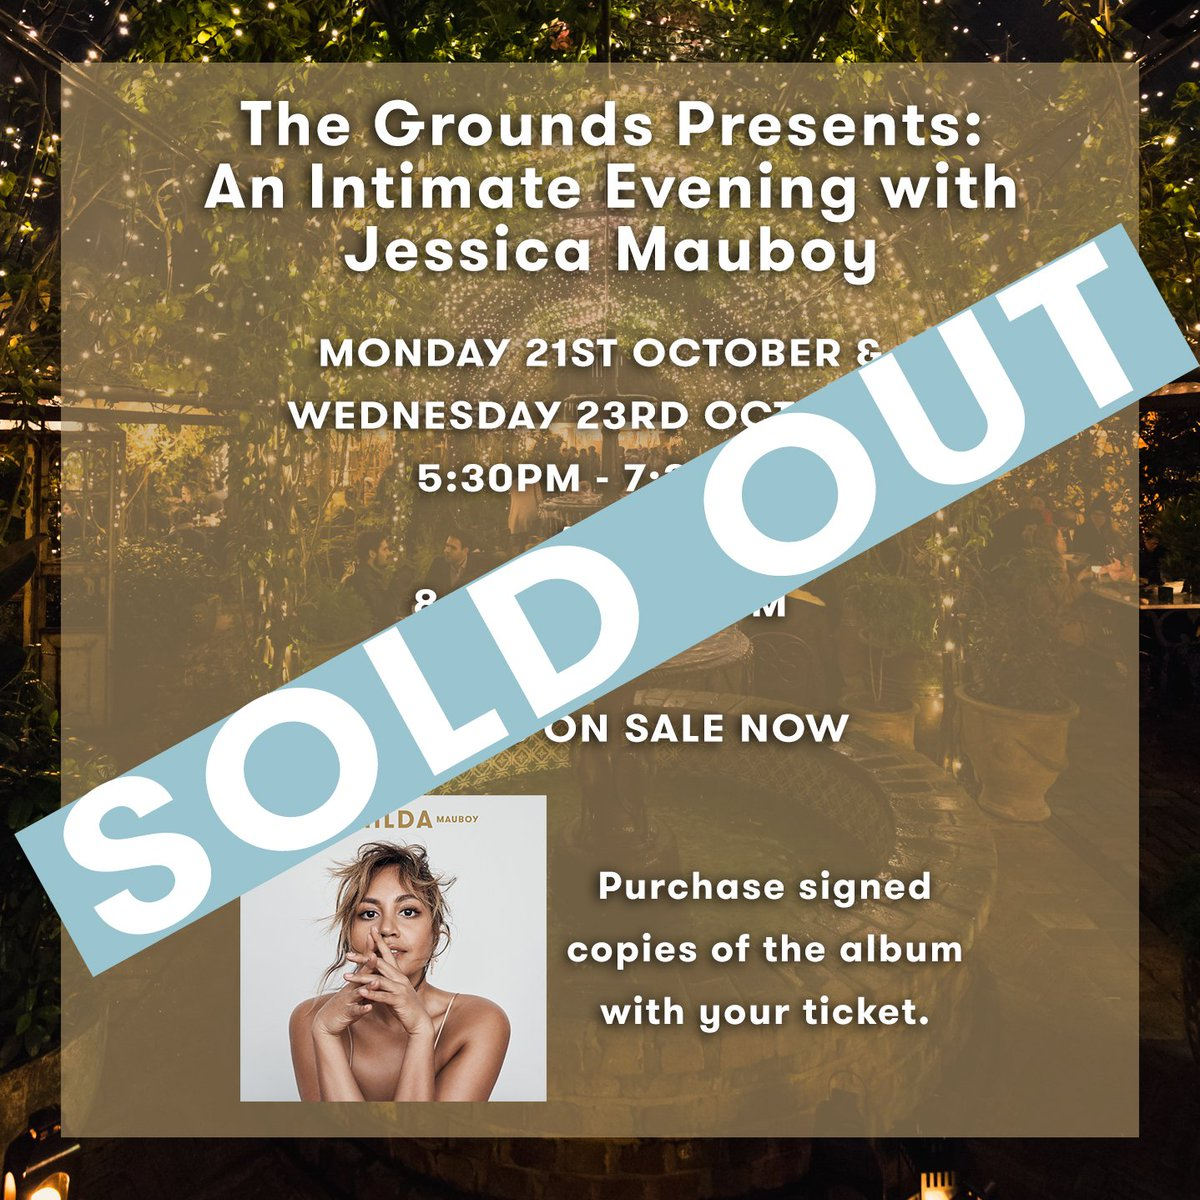 Can't believe The Grounds performances have sold out! I can't wait to see you at the first two shows tonight to celebrate the release of #Hilda .💖 https://t.co/1Kj8Xg6czu https://t.co/8dpNz3zr5z